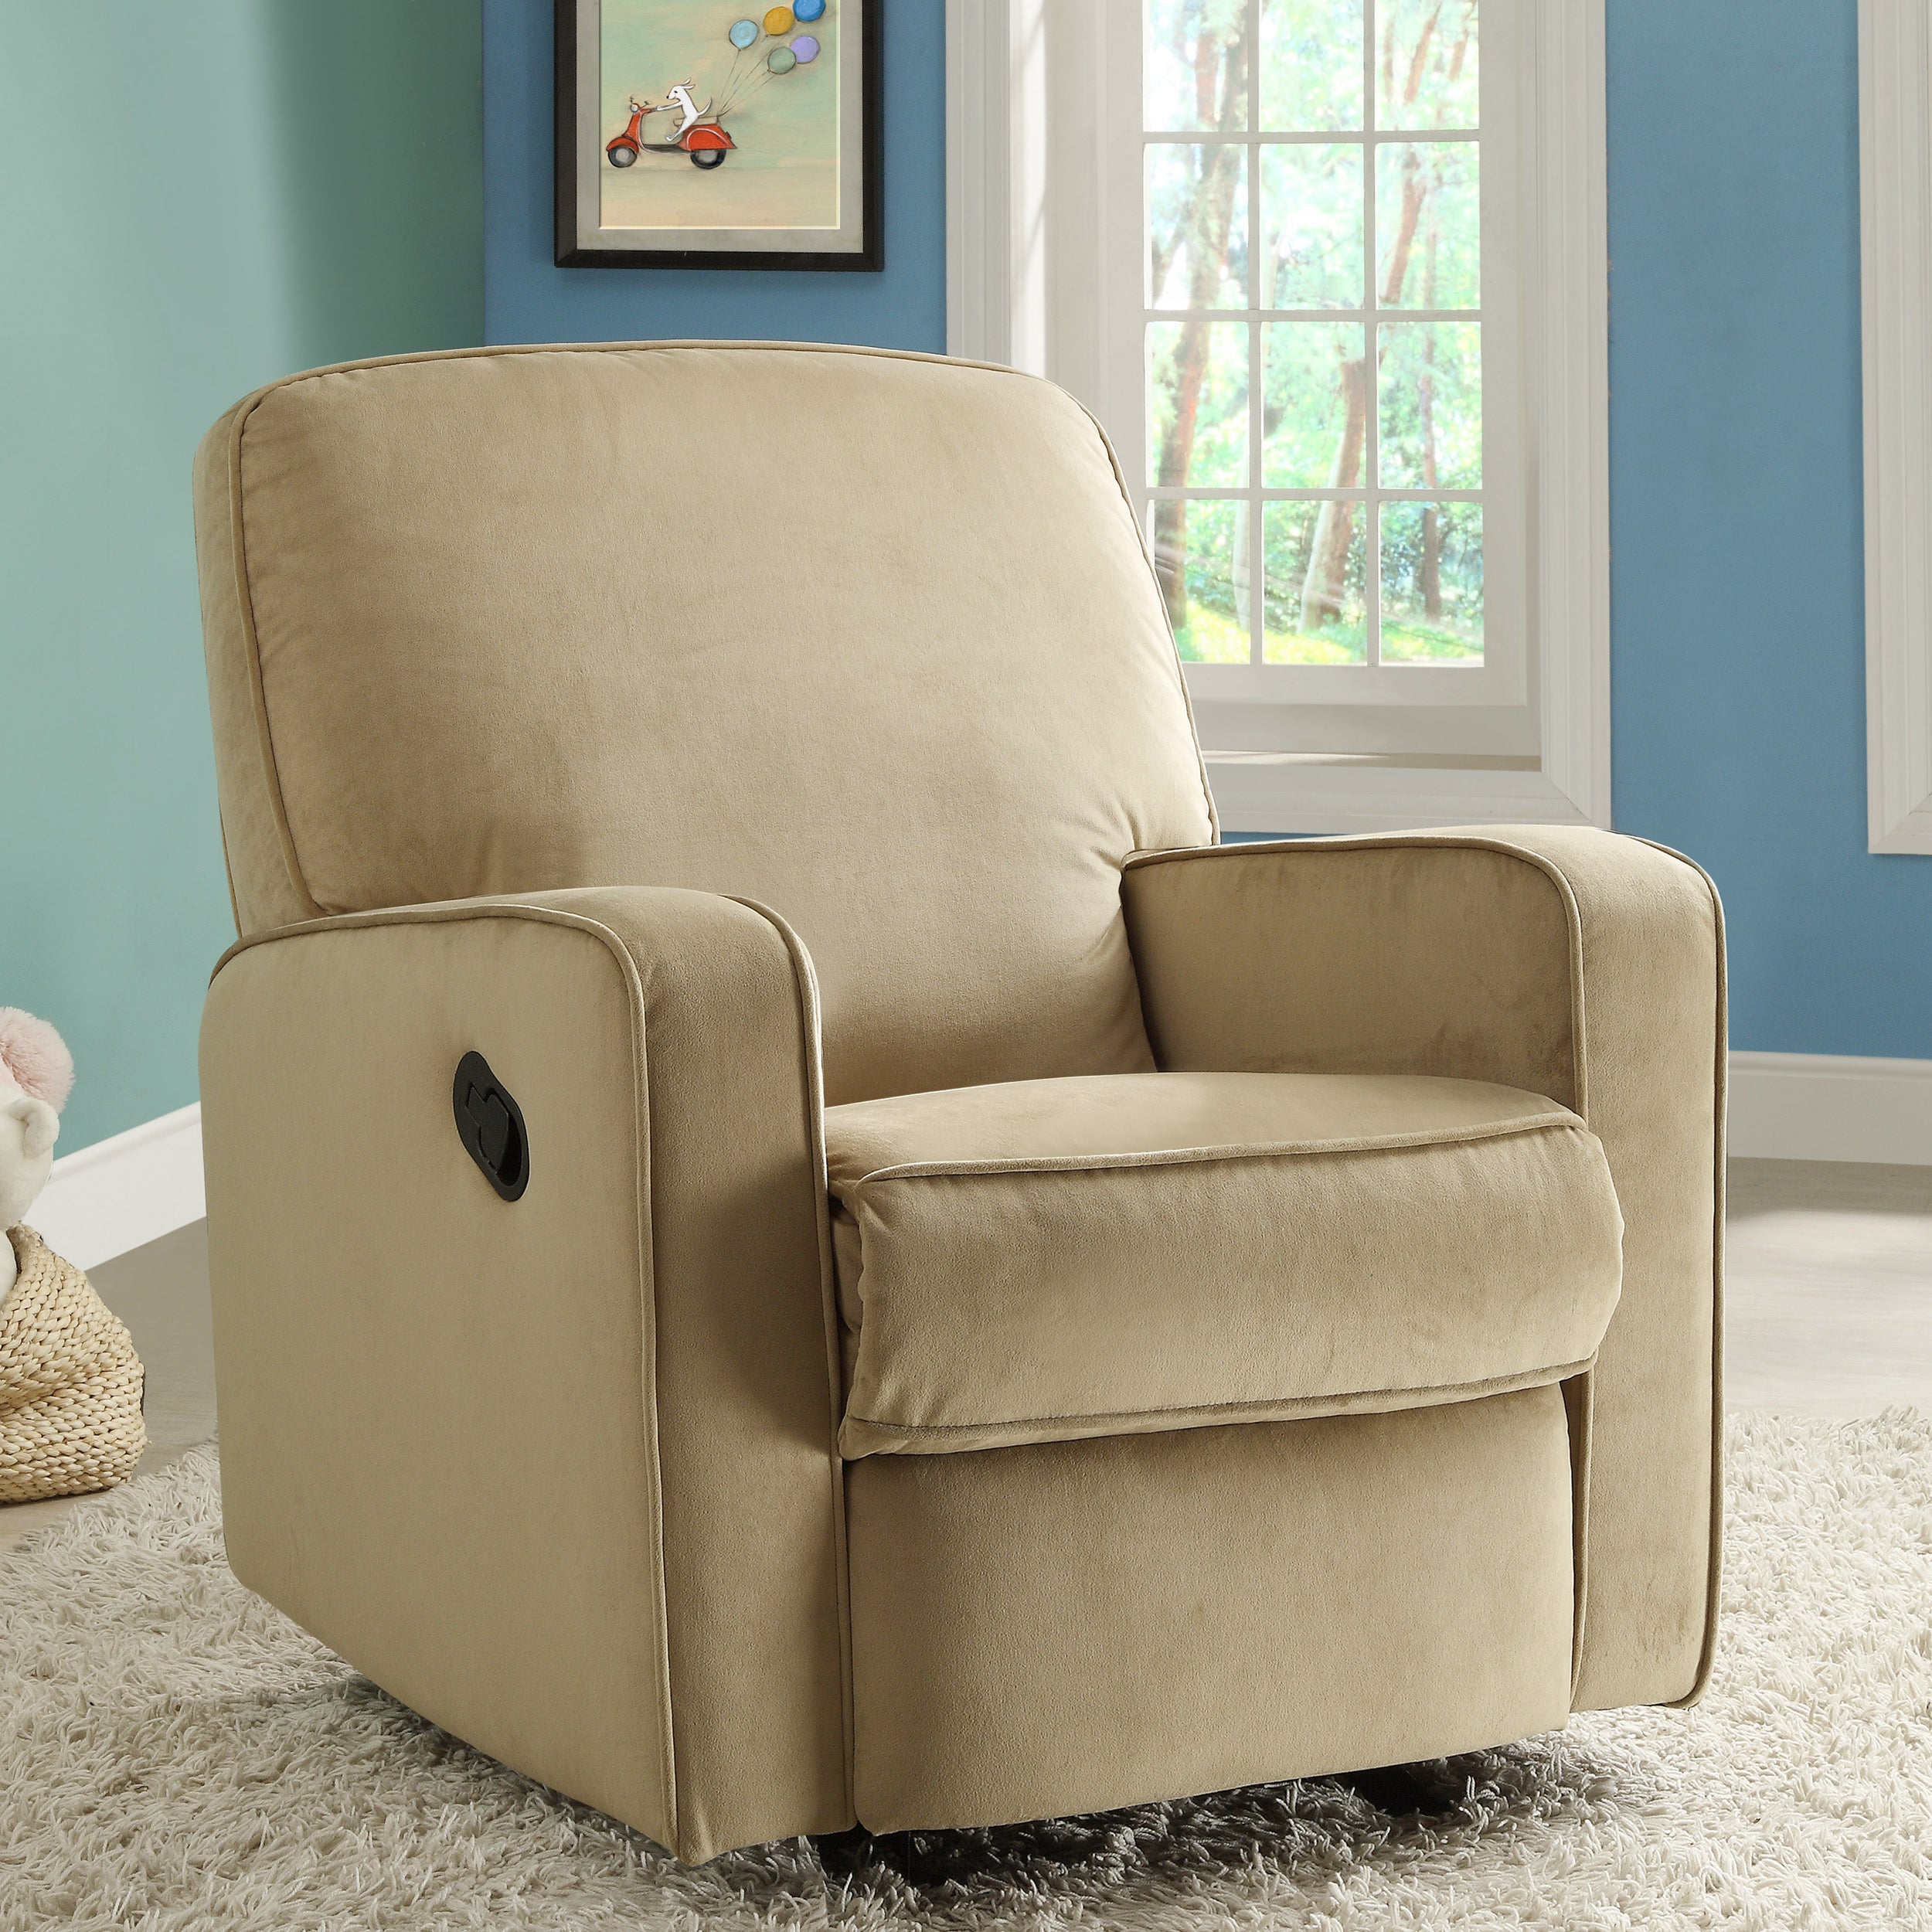 Bentley Camel Brown Fabric Modern Nursery Swivel Glider Recliner Chair On Free Shipping Today 7942155